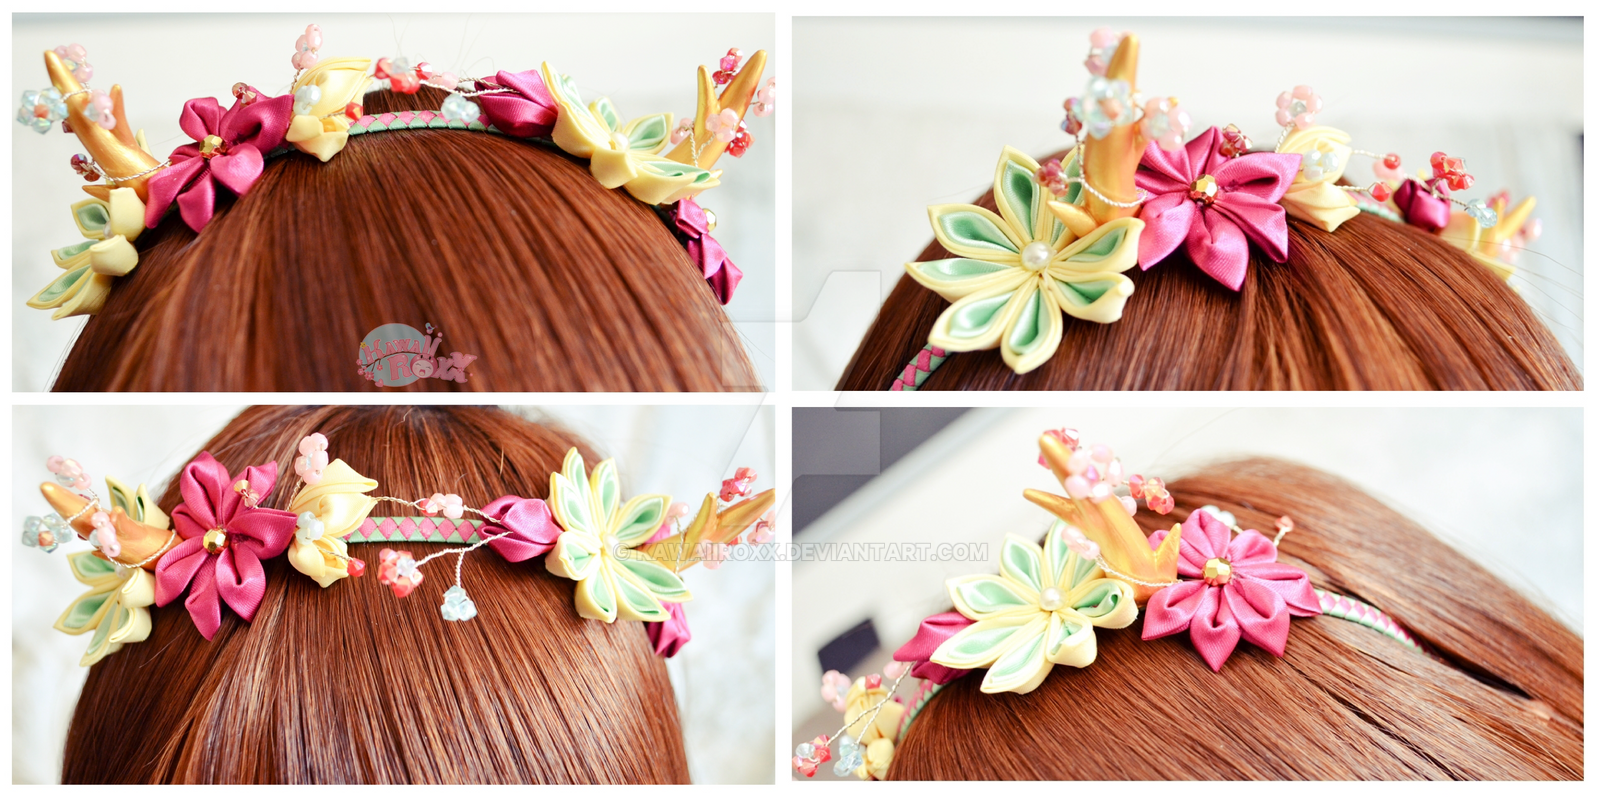 Kanzashi headband horns gold fuschia by KawaiiRoxX